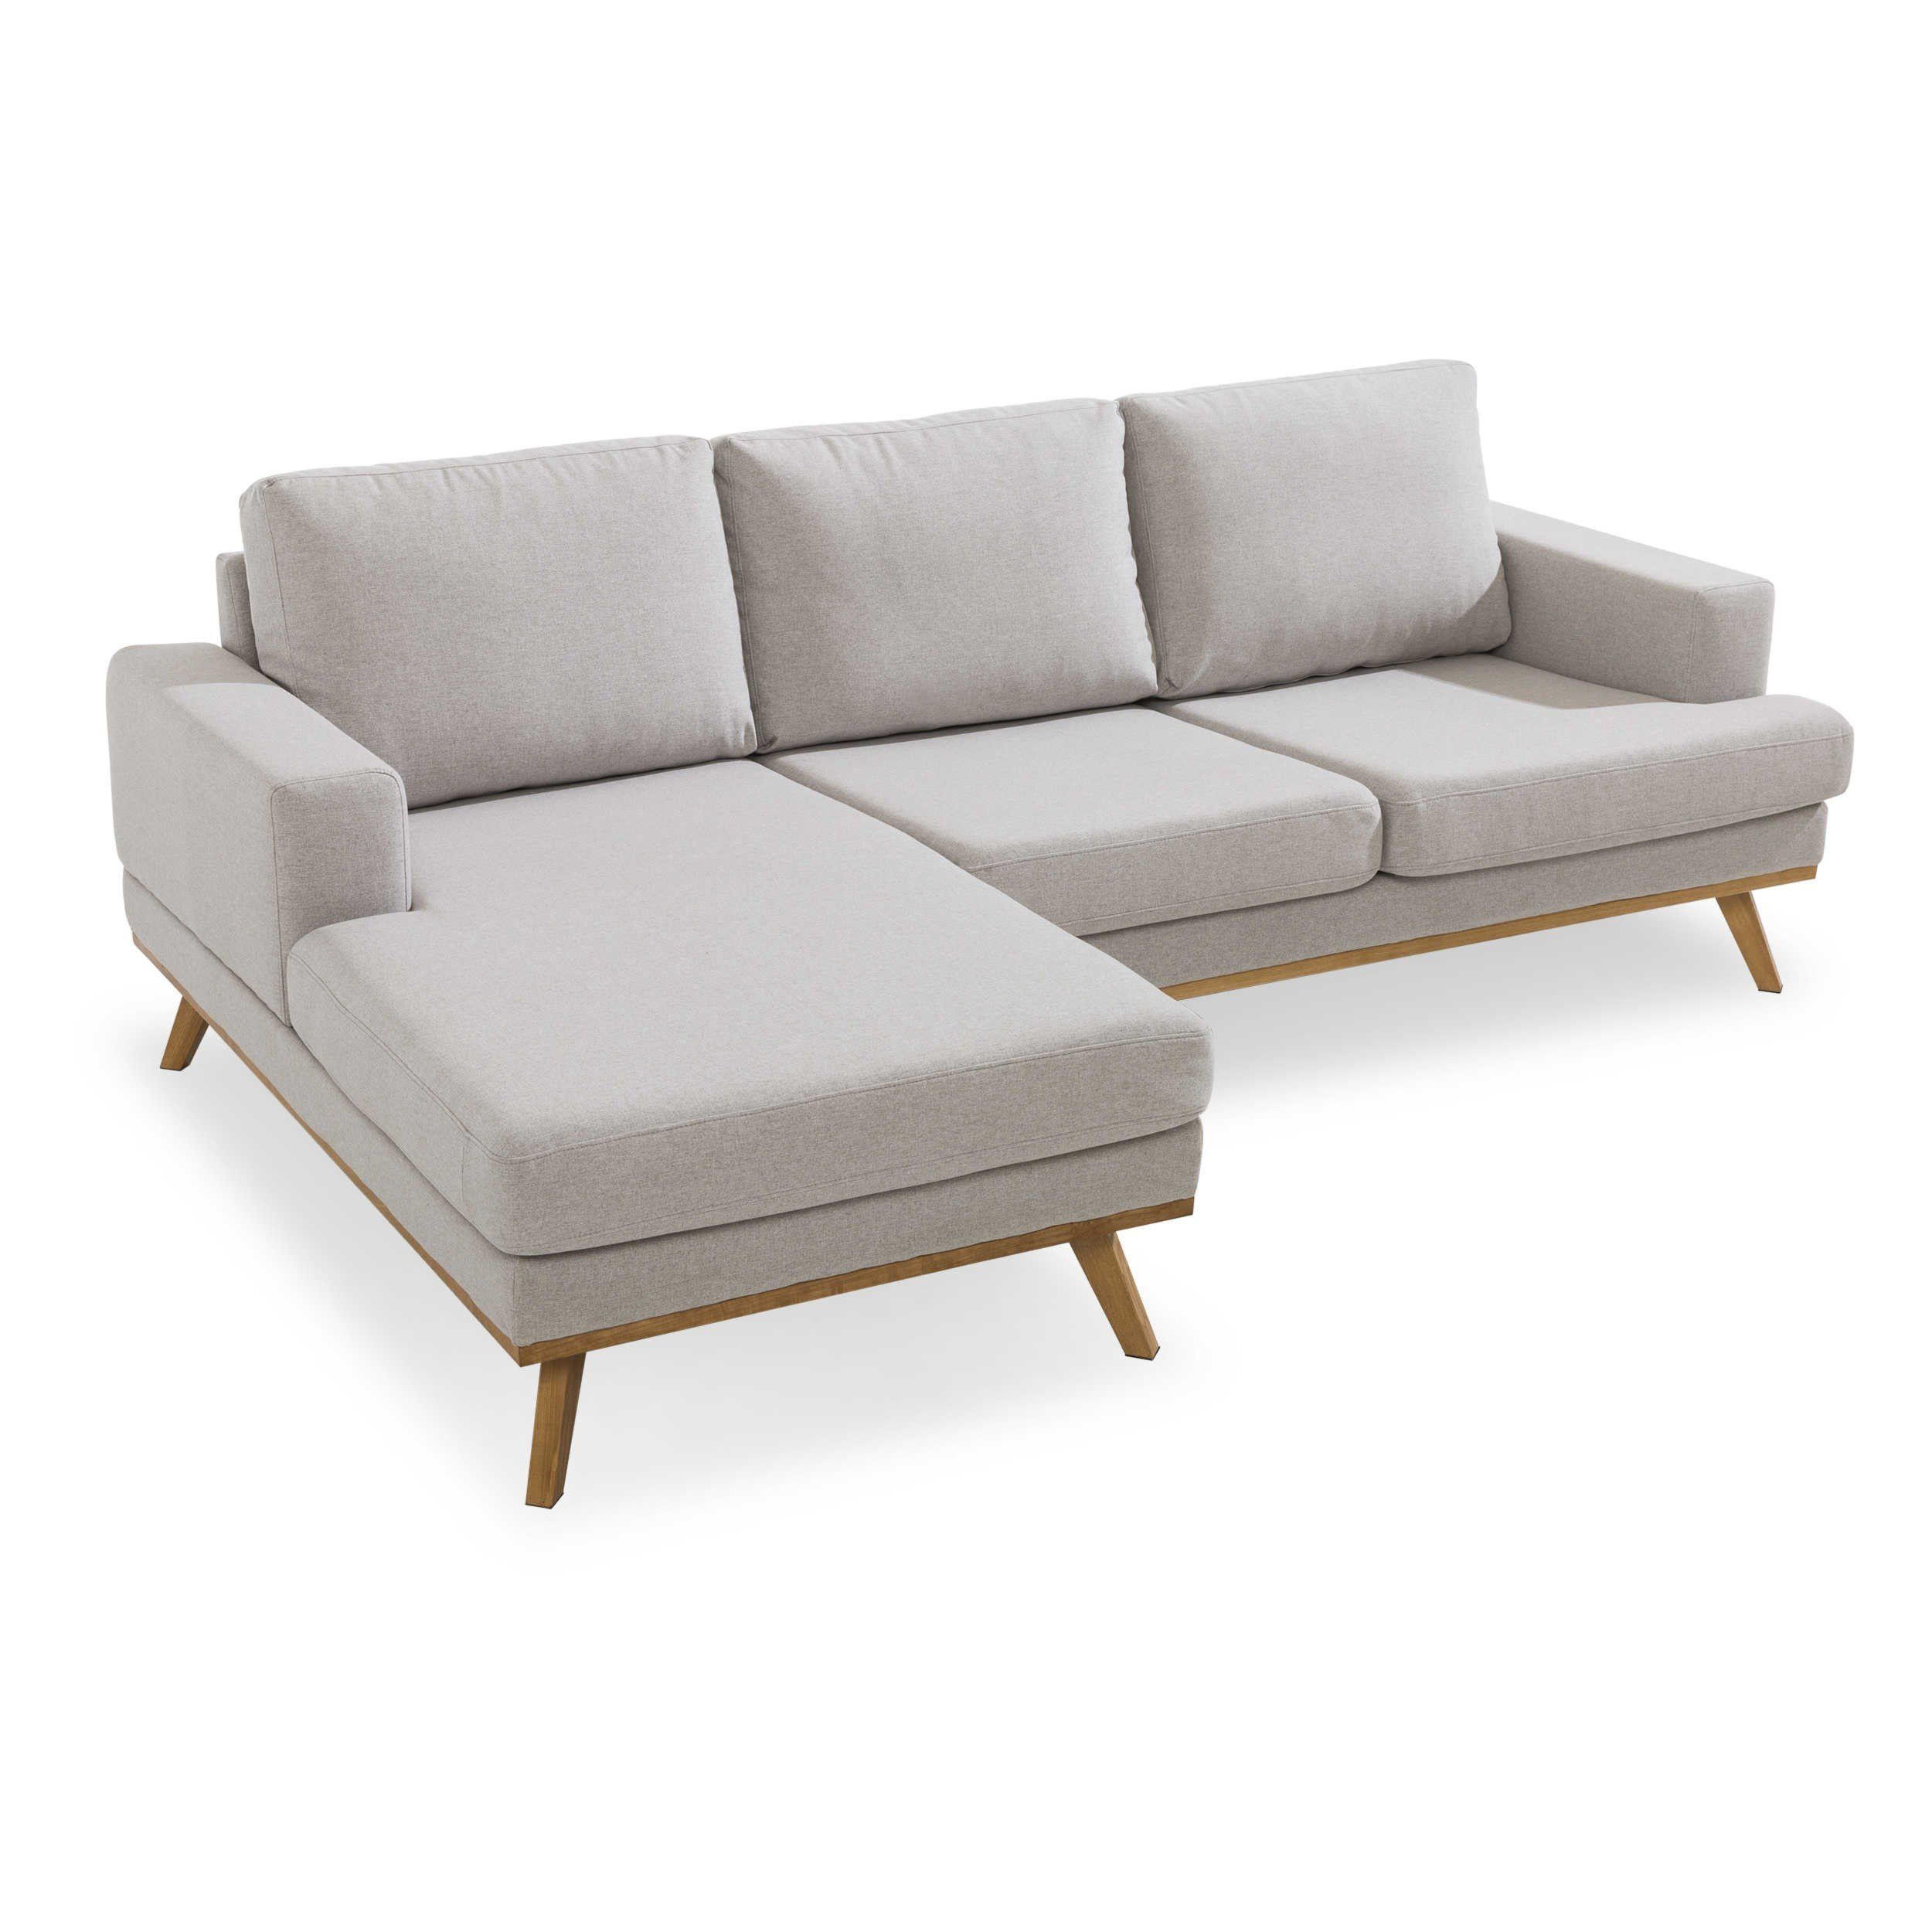 Cnouch Schlafsofas Ecksofa Norwich In 2019 House Sofa Couch Und Furniture